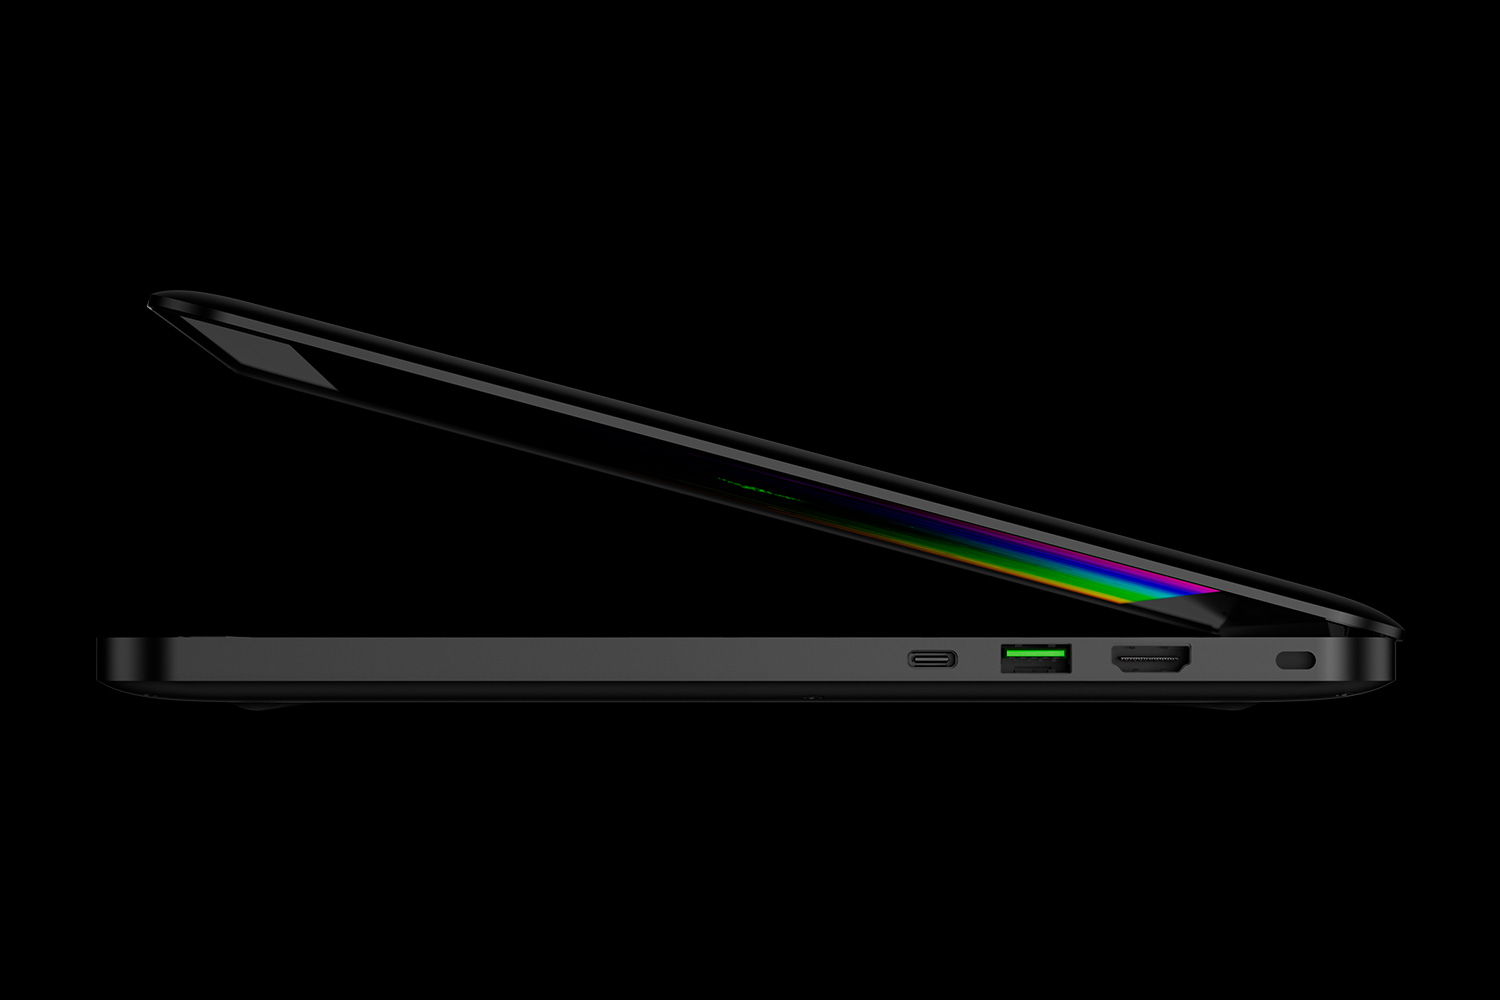 The New Razer Blade Gaming Laptop